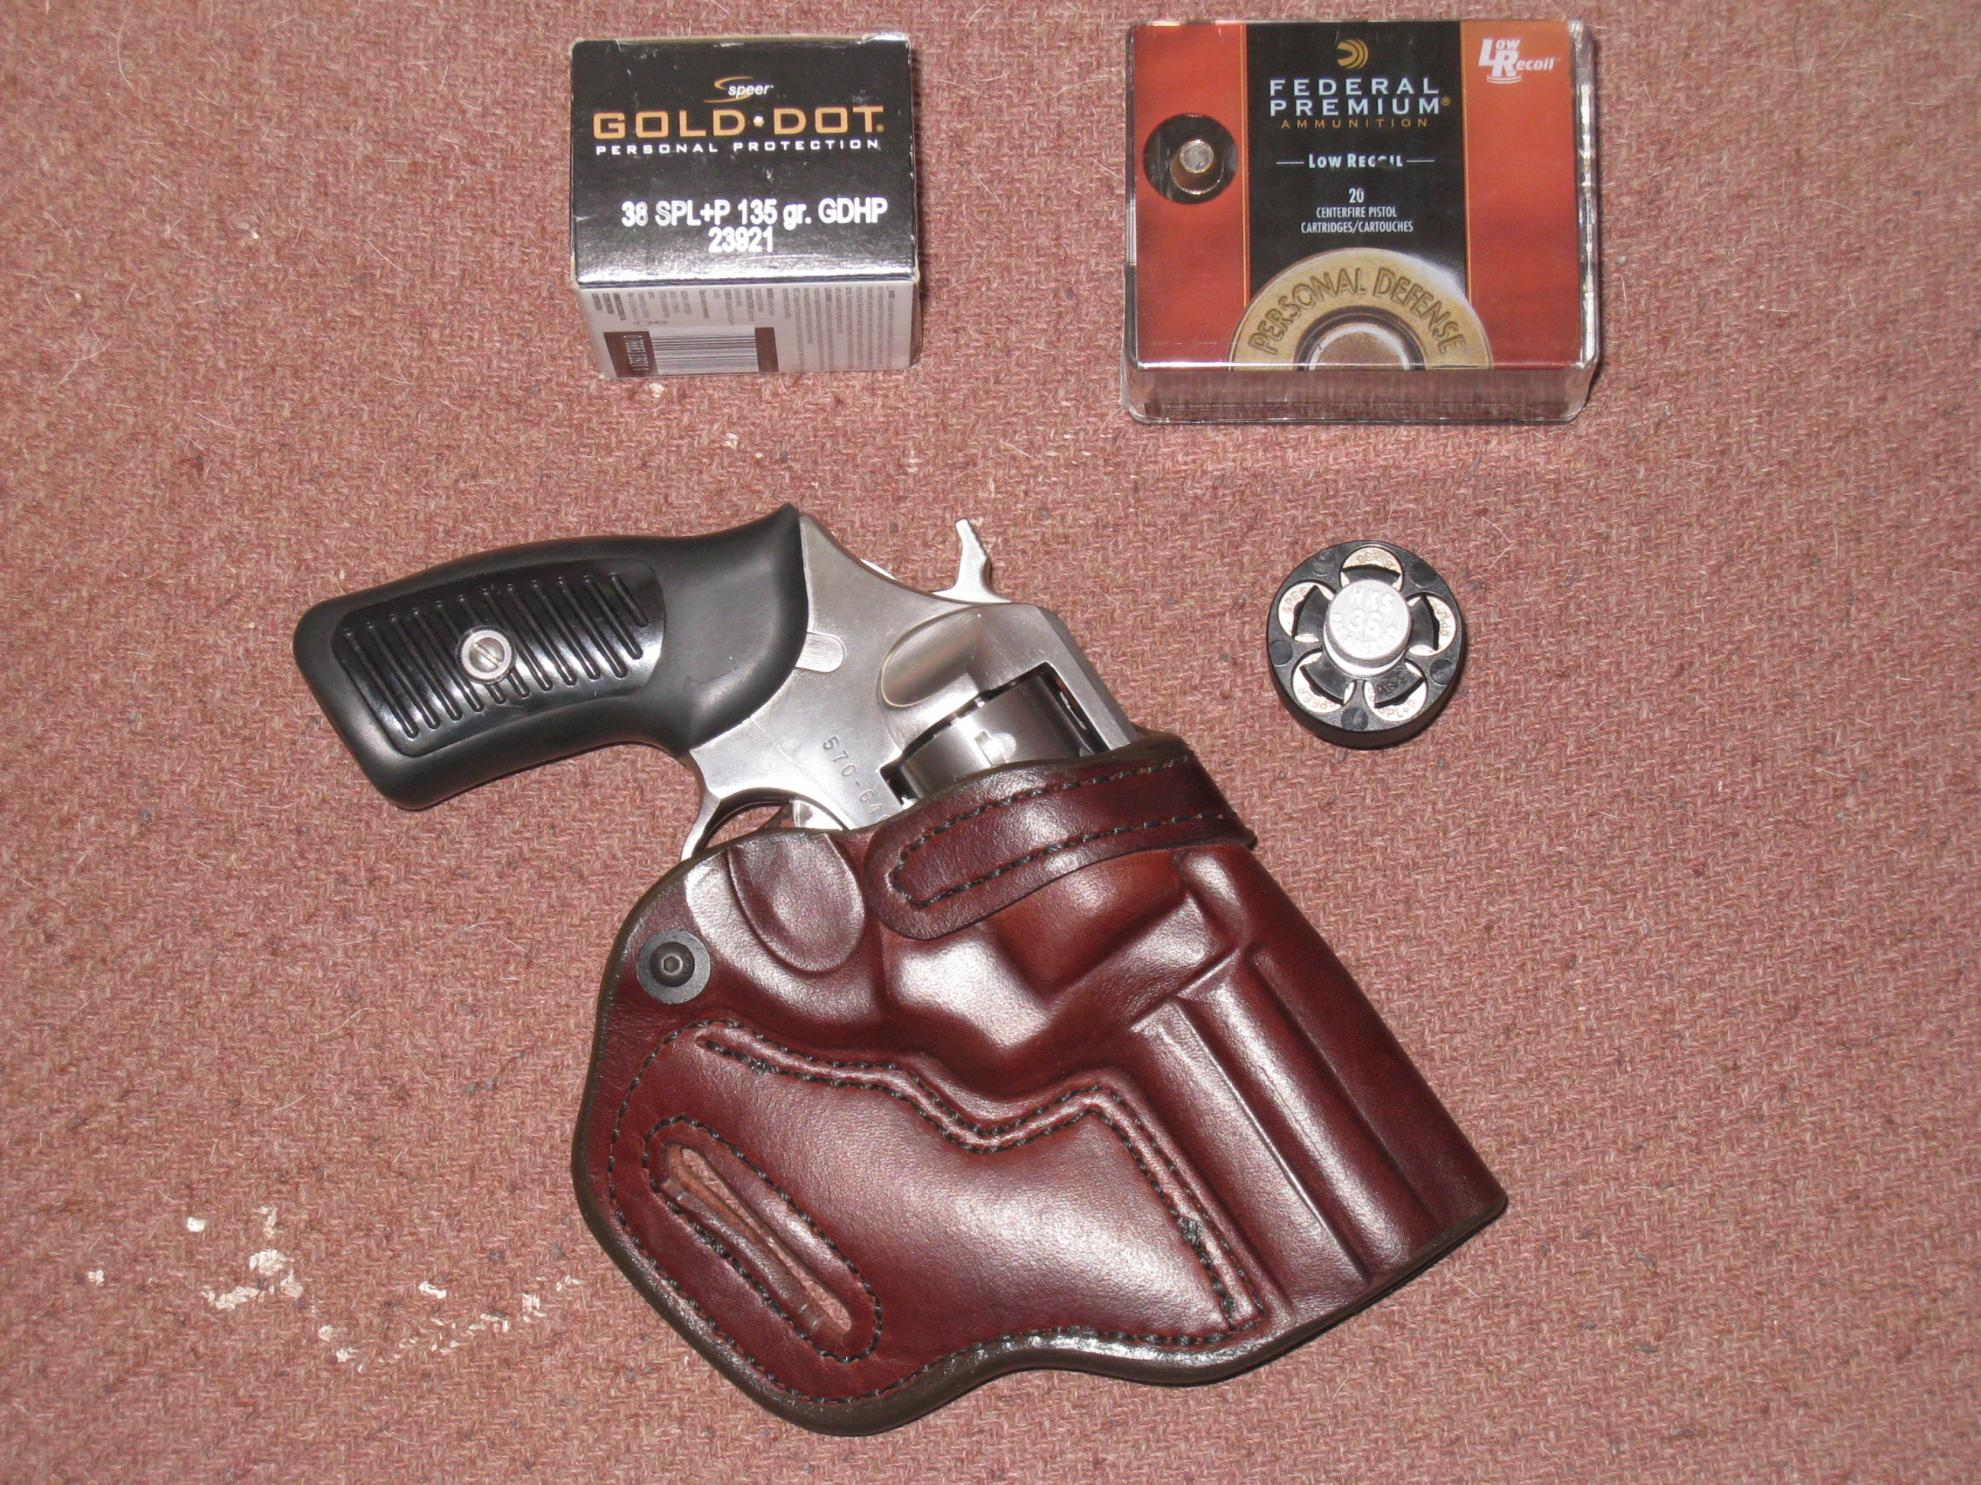 Haugen Handgun Leather-picture-007.jpg